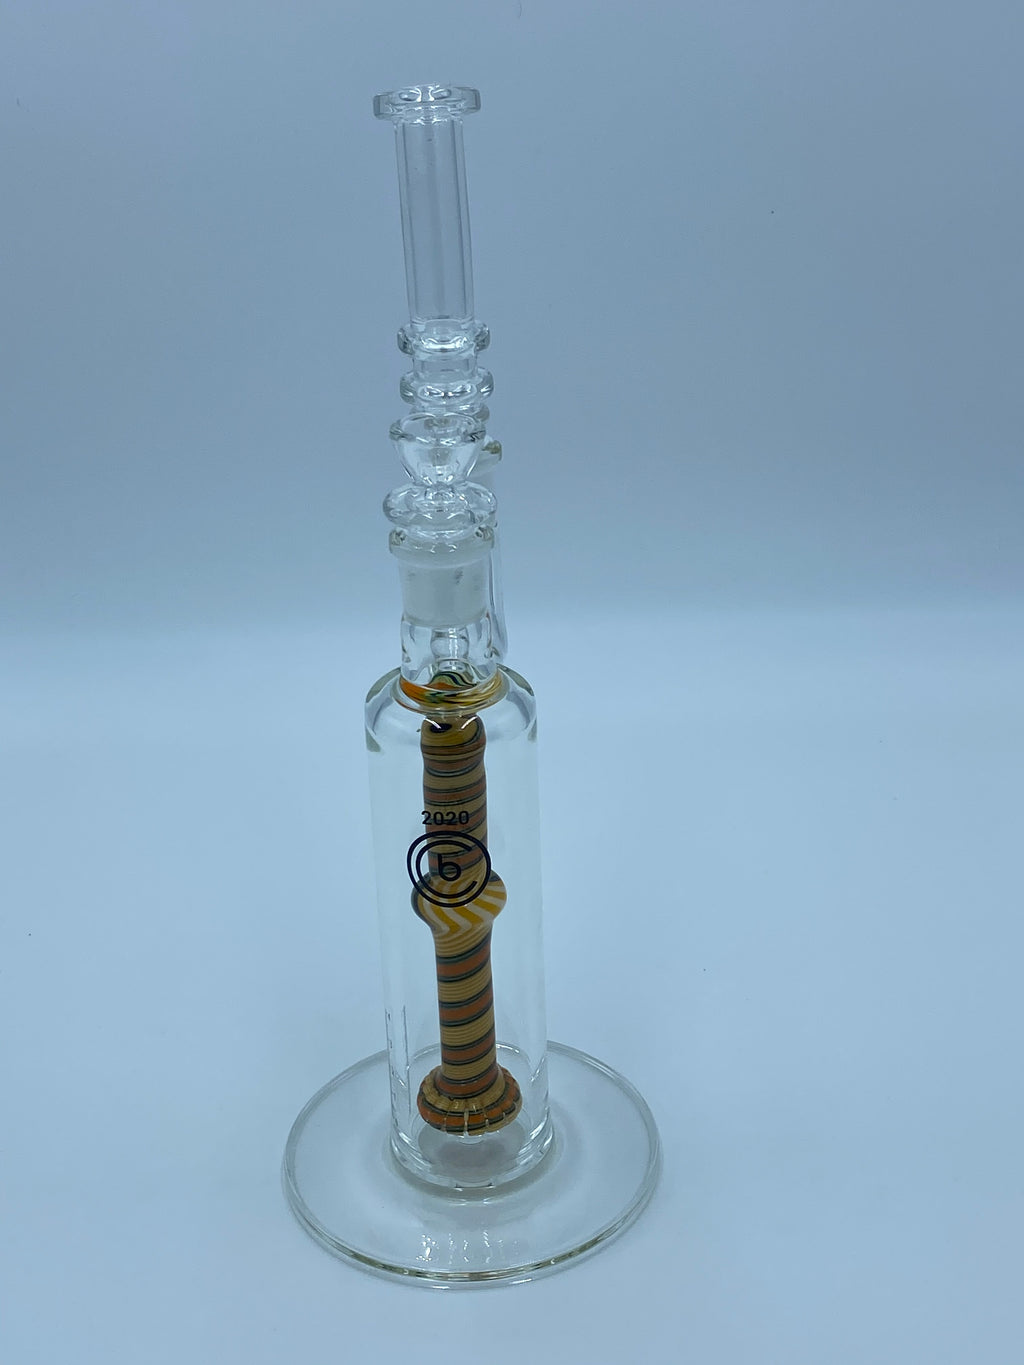 BC 2020 BUBBLER TYPE 1 - Smoke Country - Land of the artistic glass blown bongs